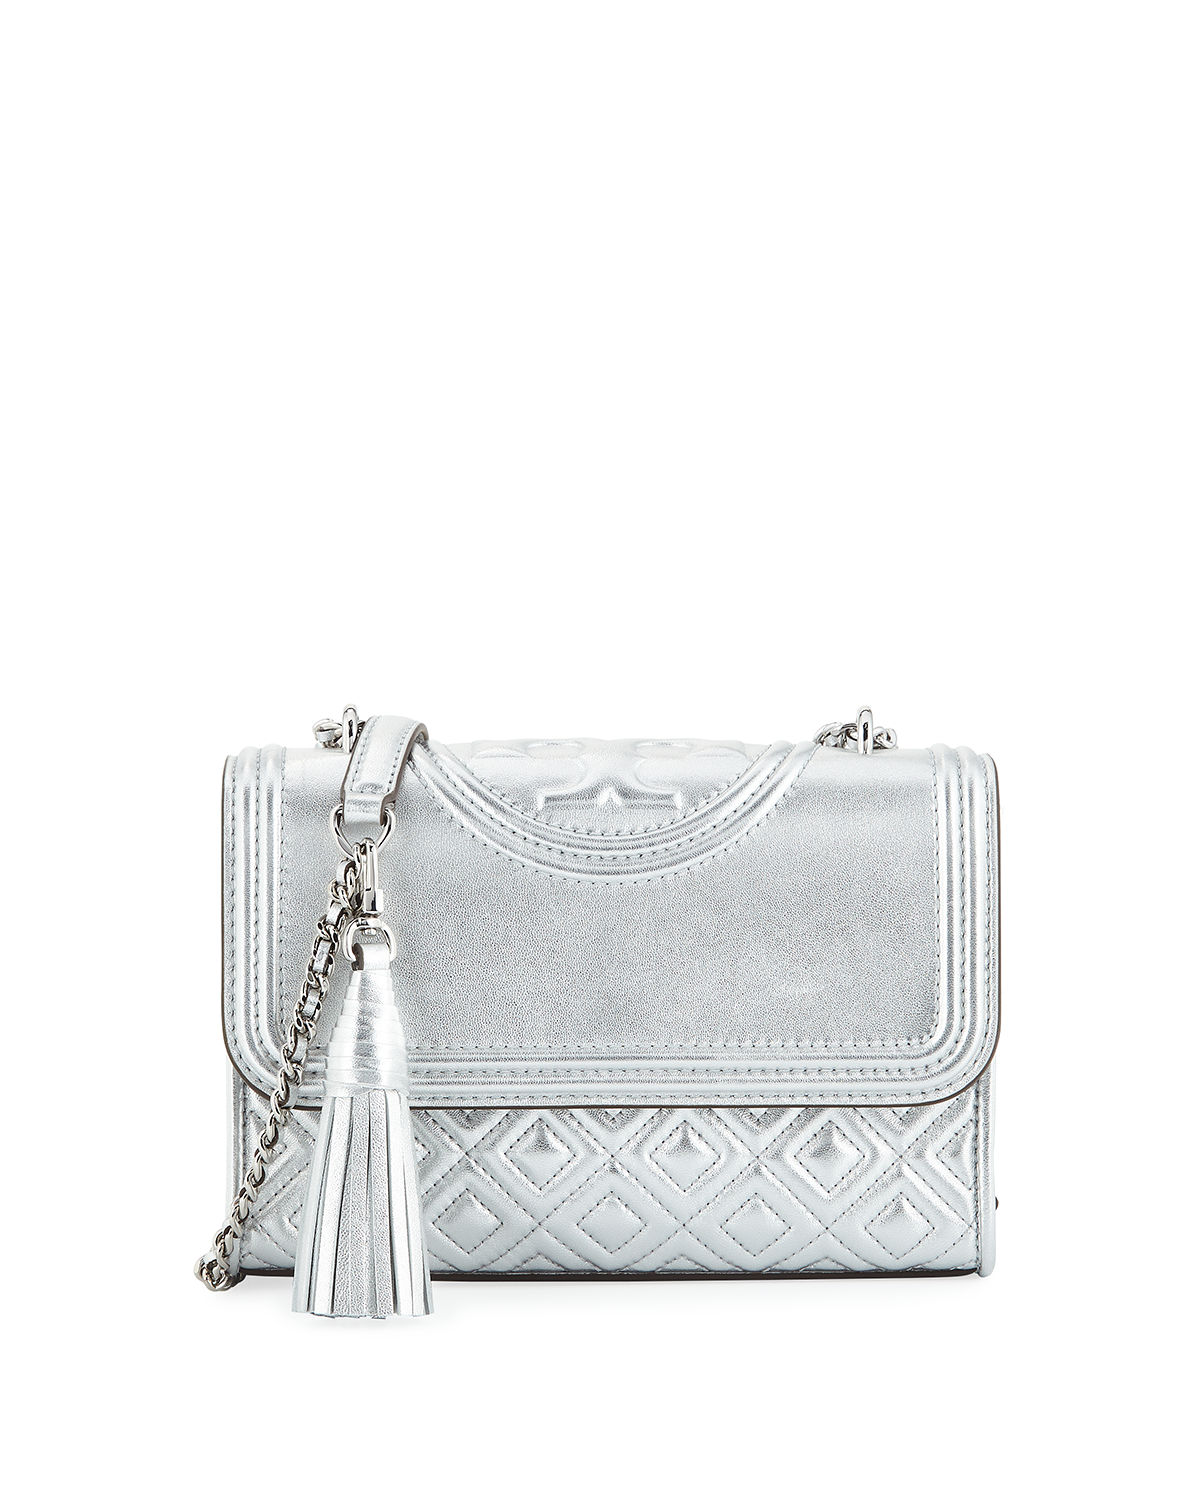 4d8ee902ae9c Tory Burch Fleming Small Convertible Metallic Leather Shoulder Bag ...